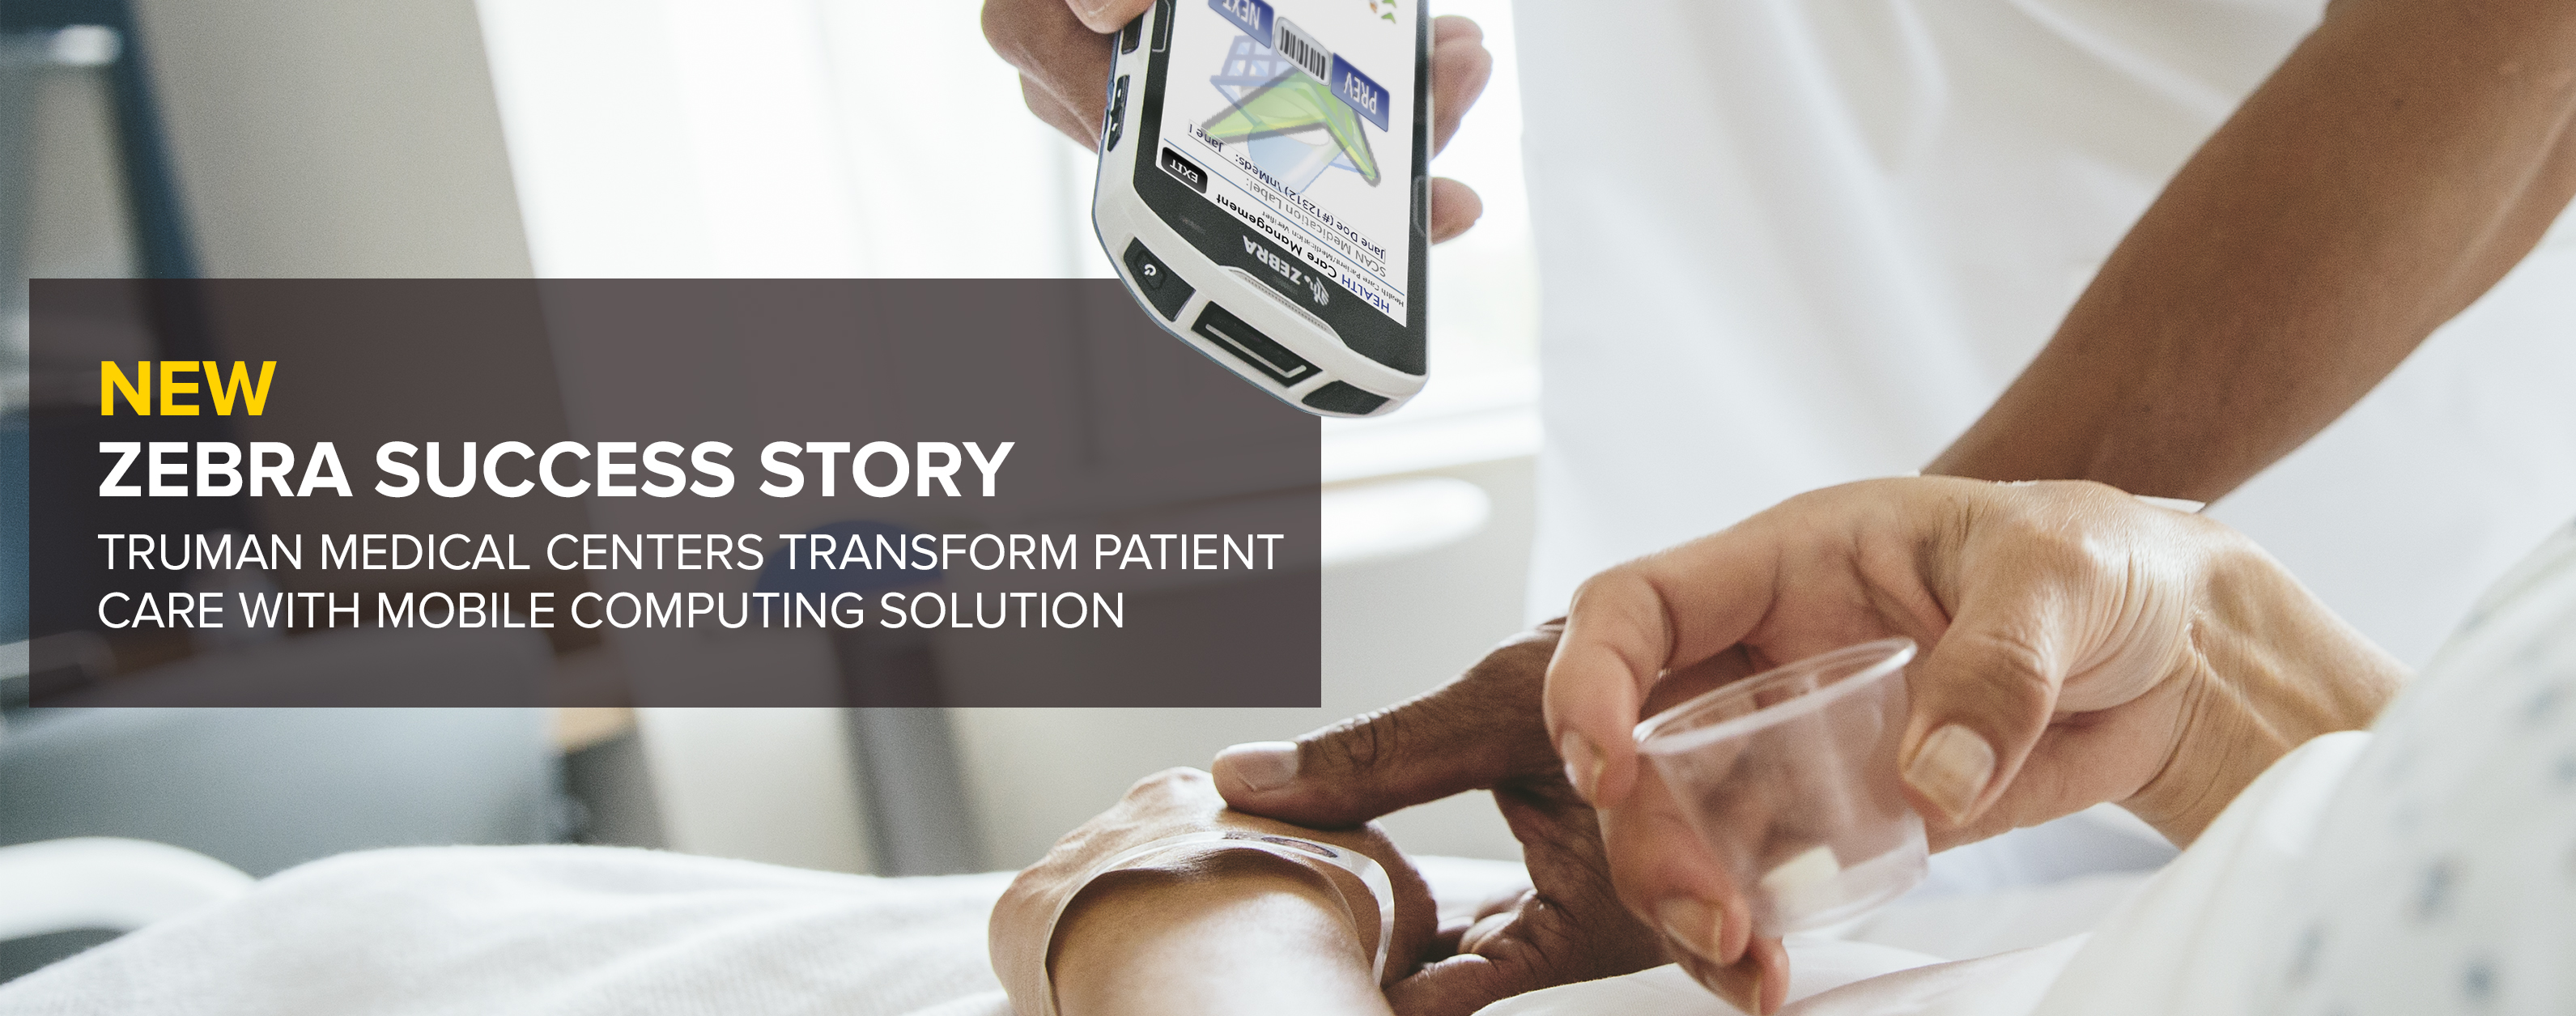 TRUMAN MEDICAL CENTERS TRANSFORM PATIENT CARE WITH MOBILE COMPUTING SOLUTION